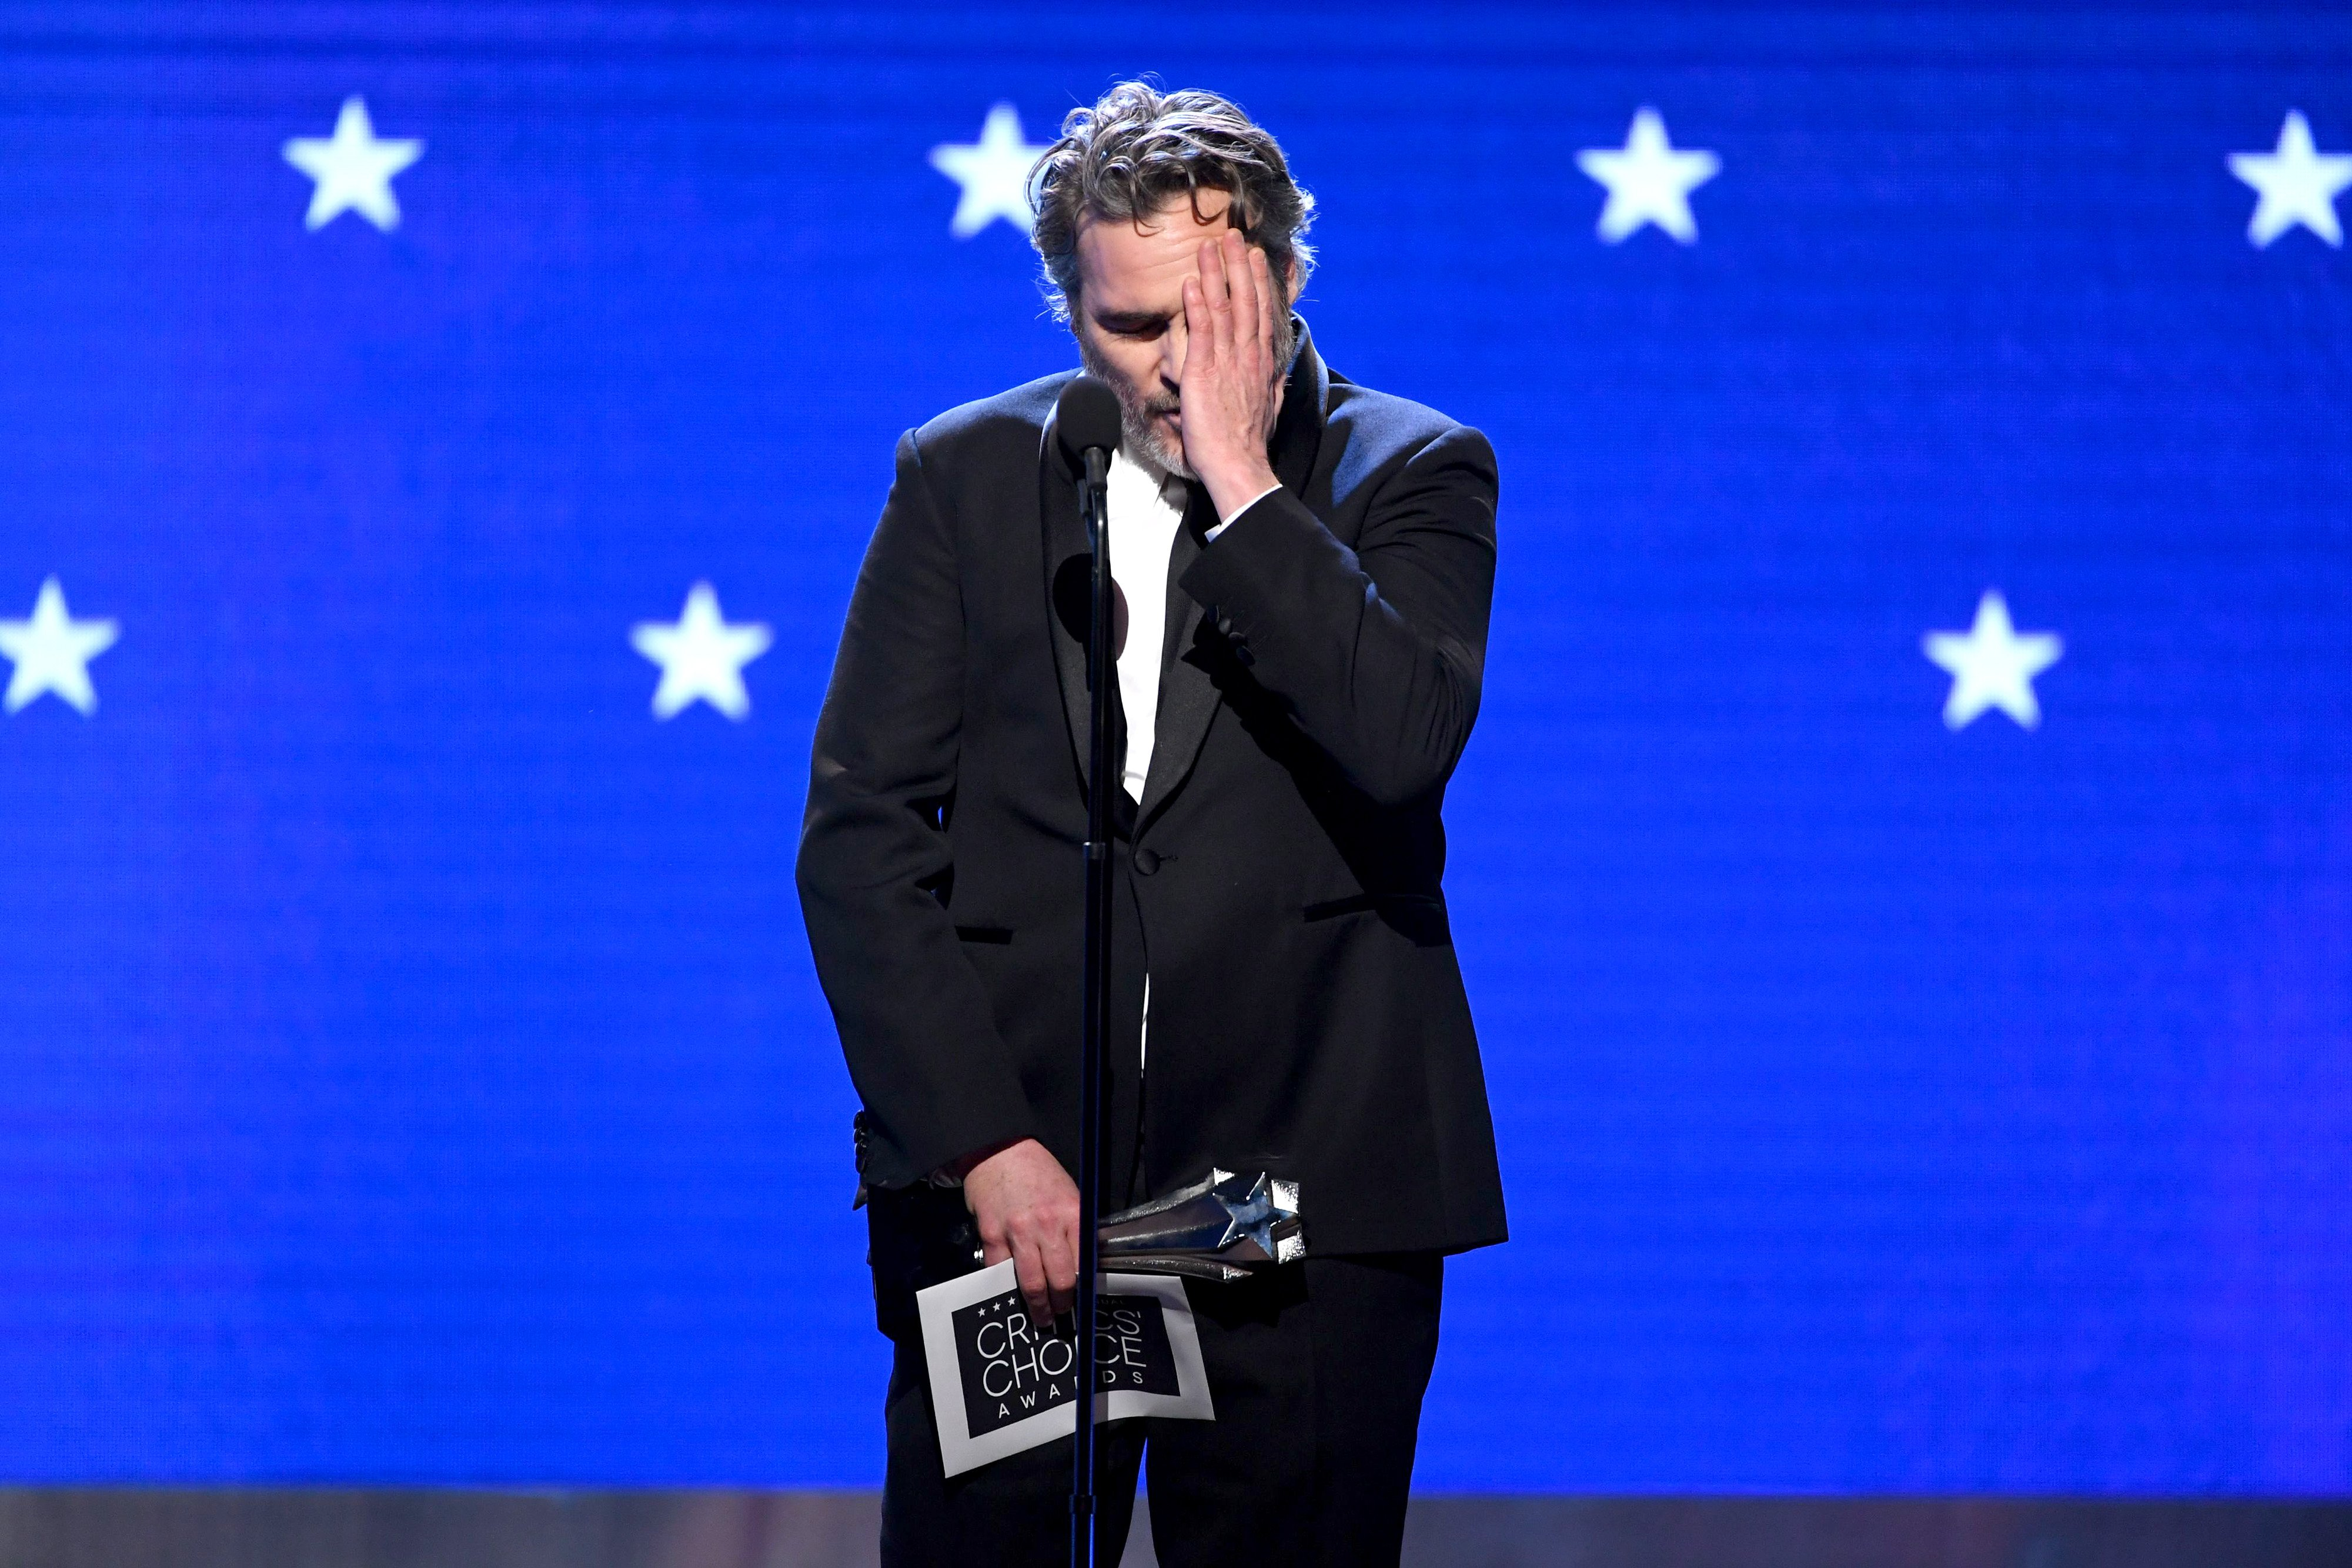 Joaquin Phoenix onstage at the Annual Critics' Choice Awards in Santa Monica, California on January 12, 2020   Photo: Getty Images